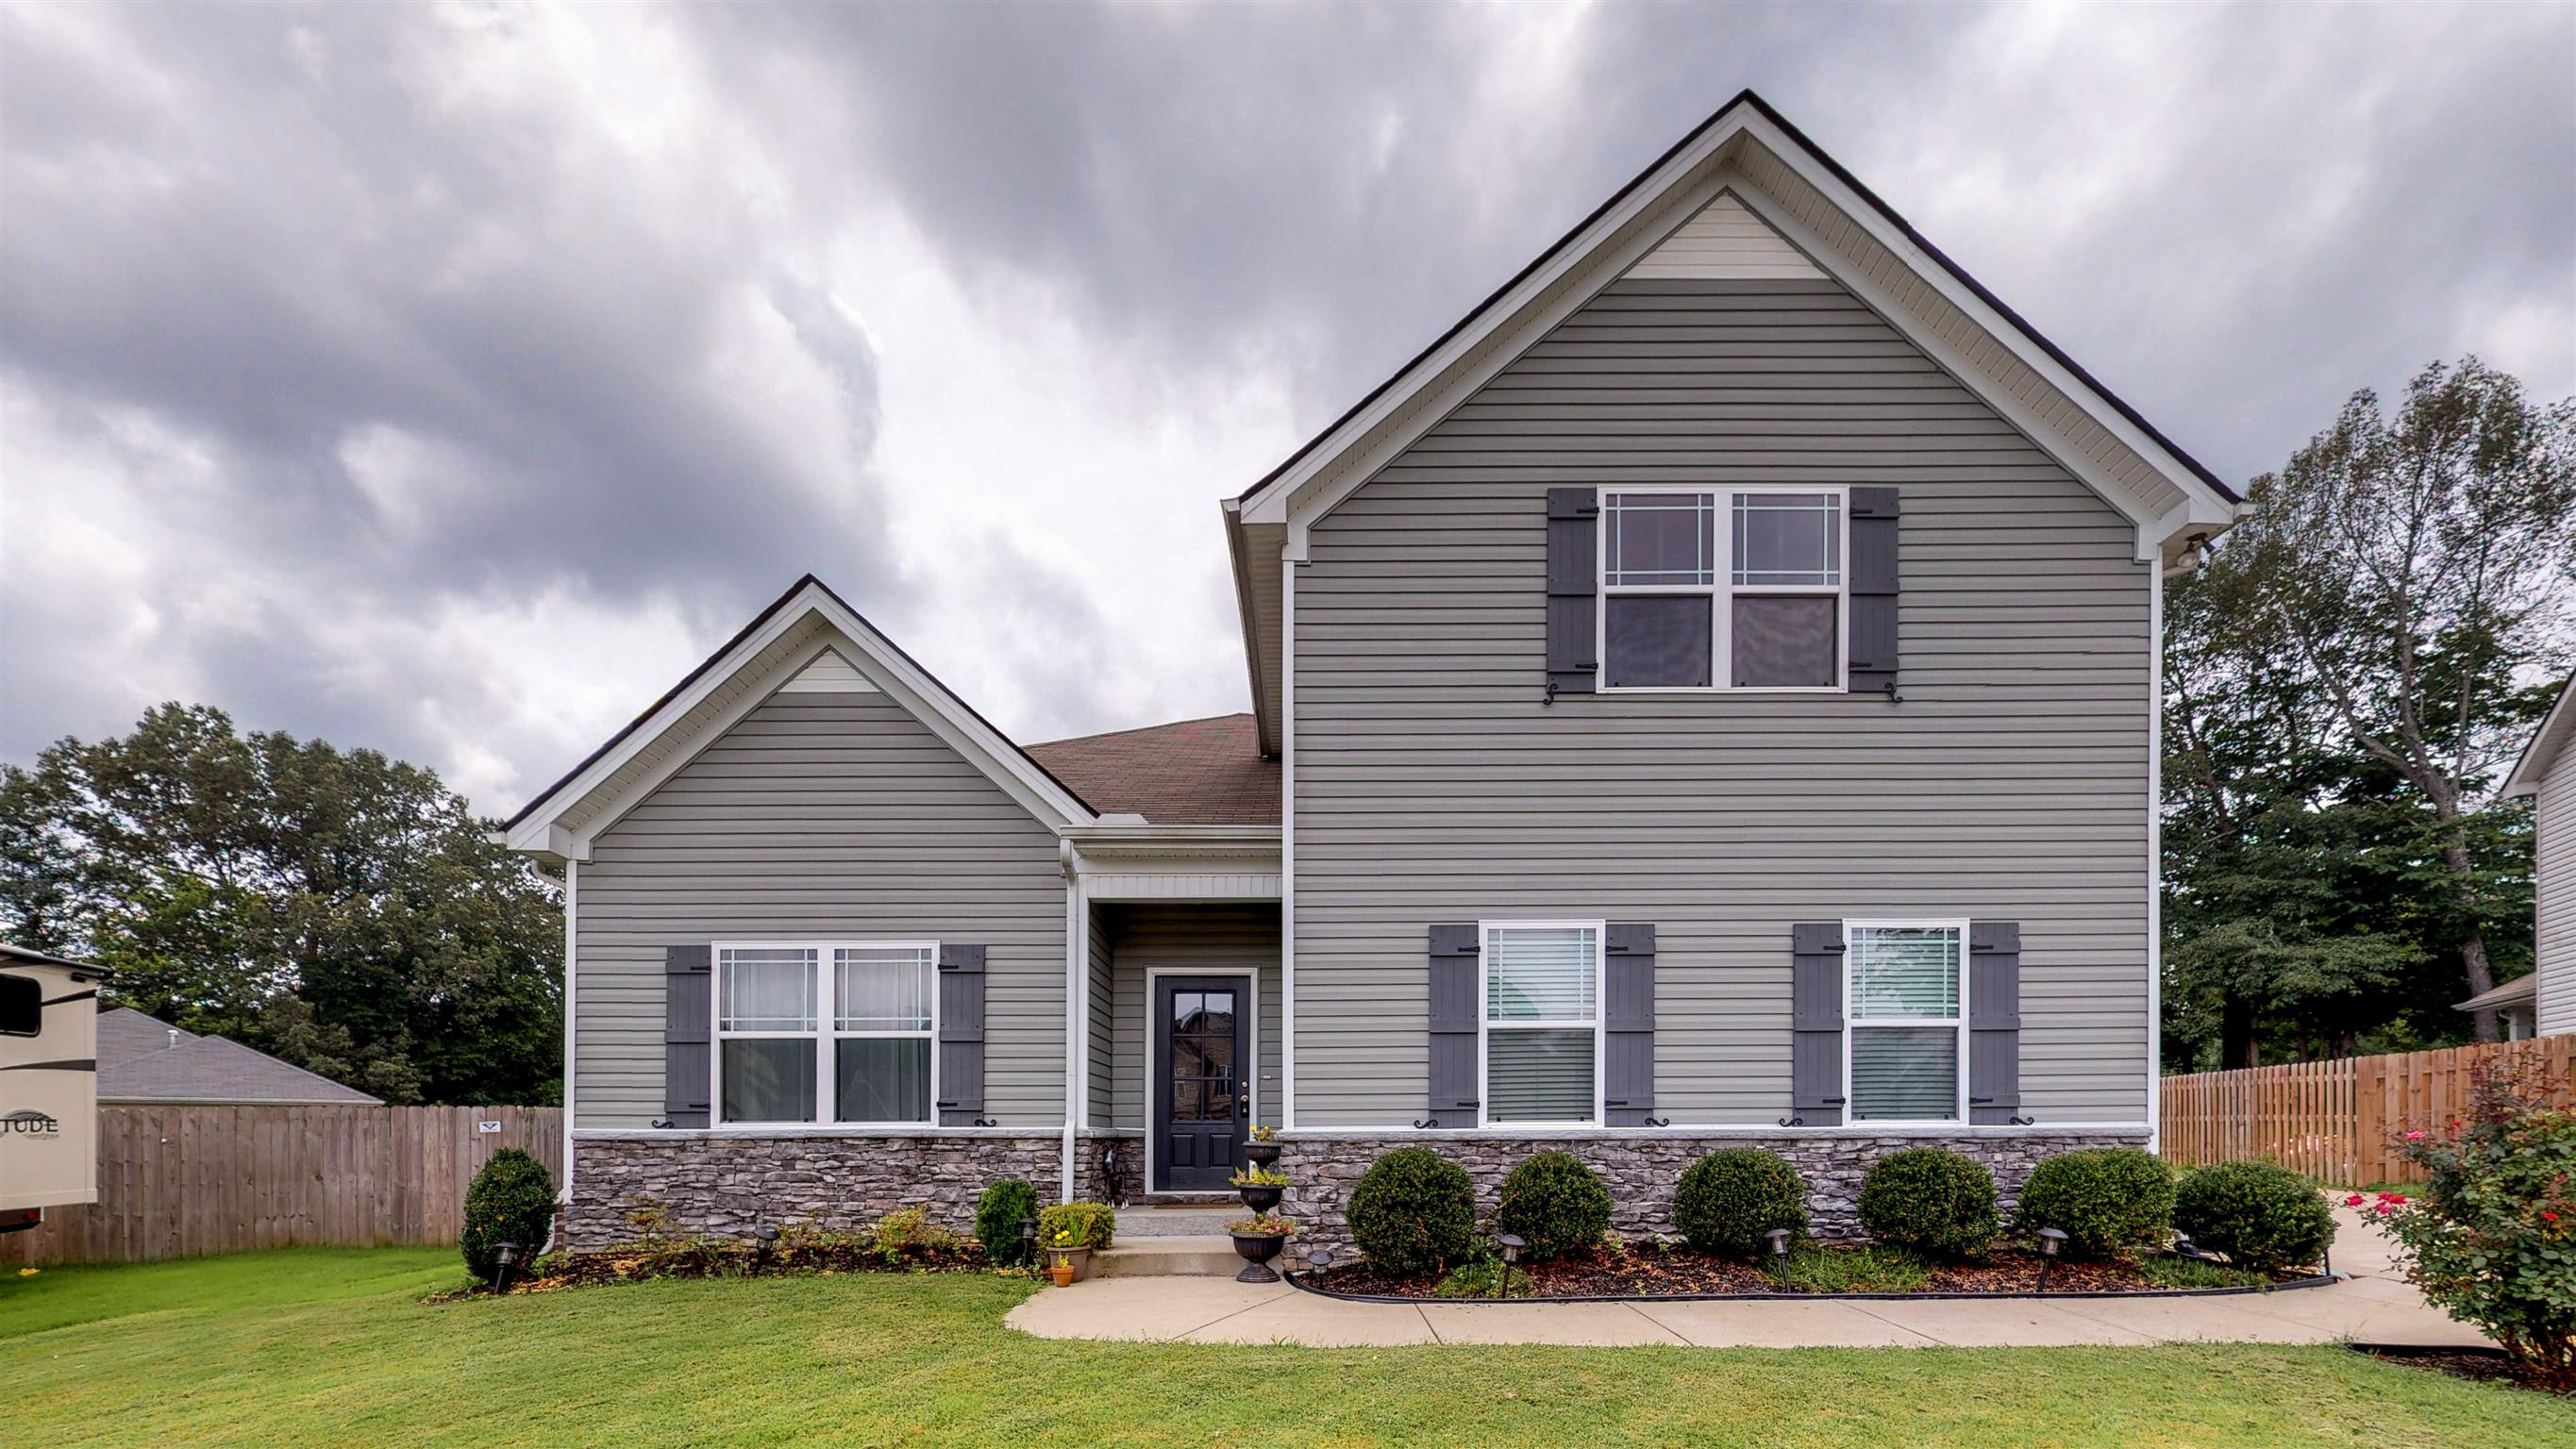 7515 Nathaniel Woods Blvd, Fairview in Williamson County County, TN 37062 Home for Sale